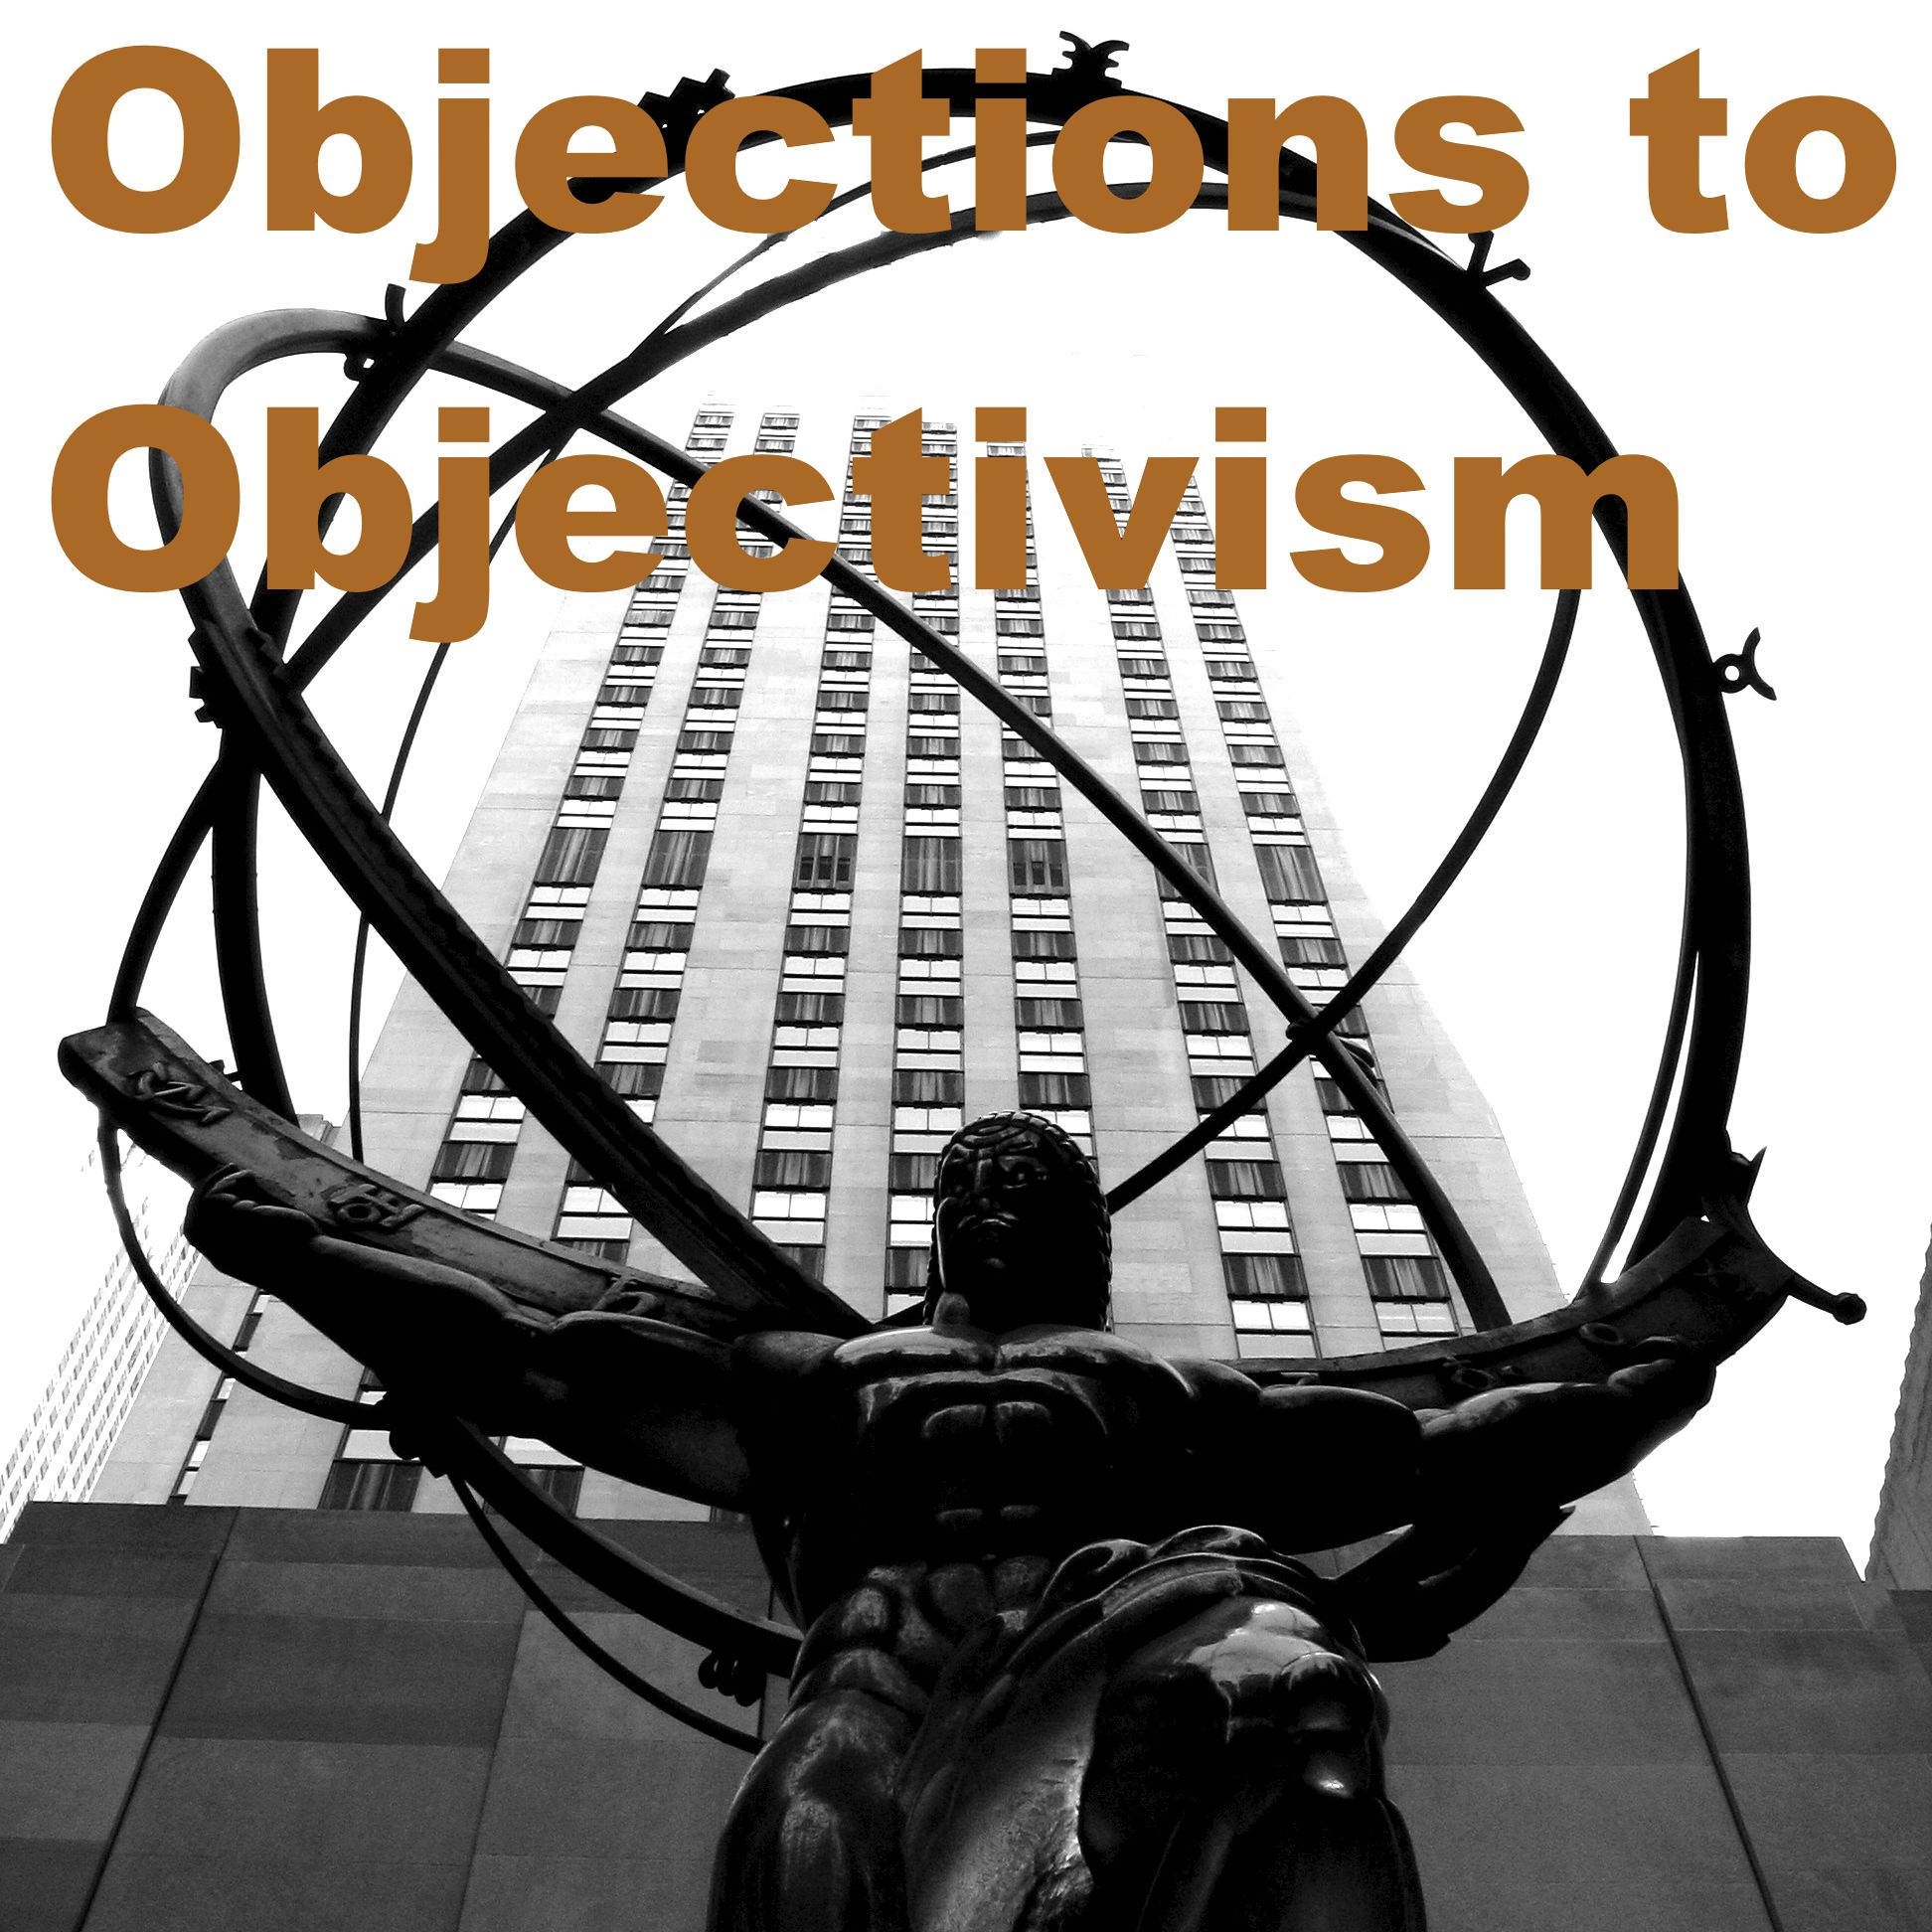 Objections to Objectivism: critiques of Ayn Rand from a moderate